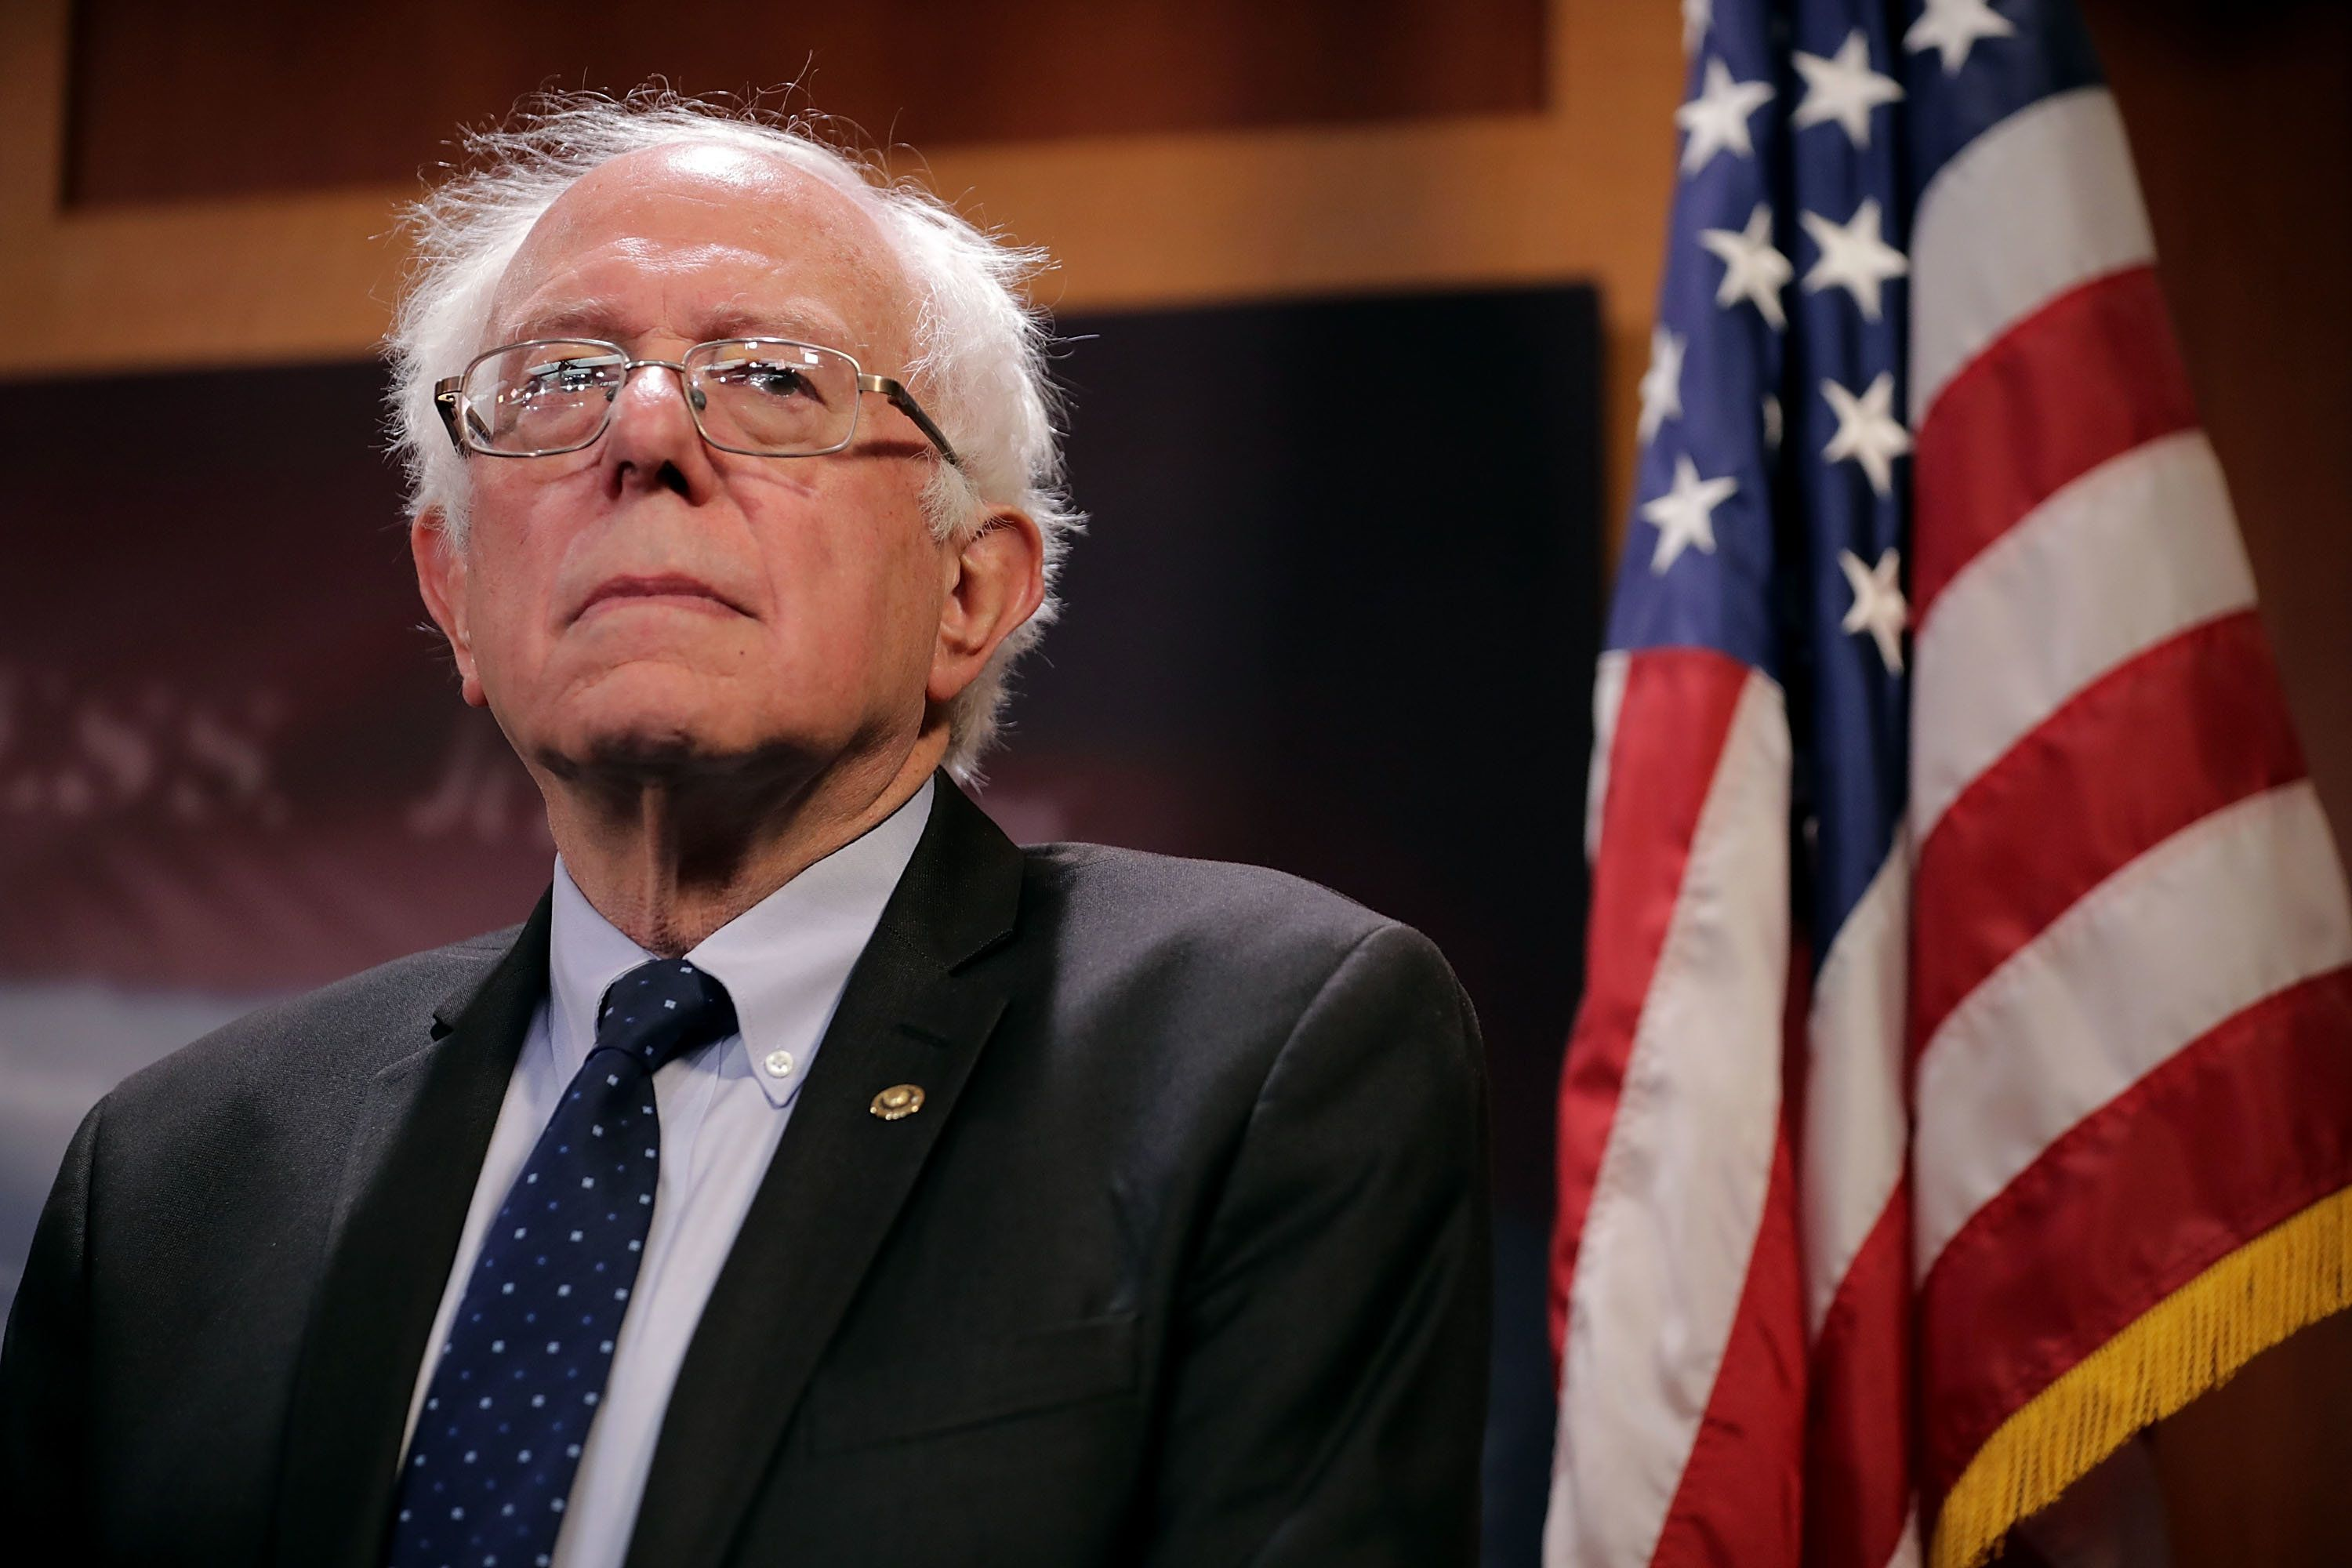 Sanders attends a news conference on Oct. 4, 2017 in Washington, DC.